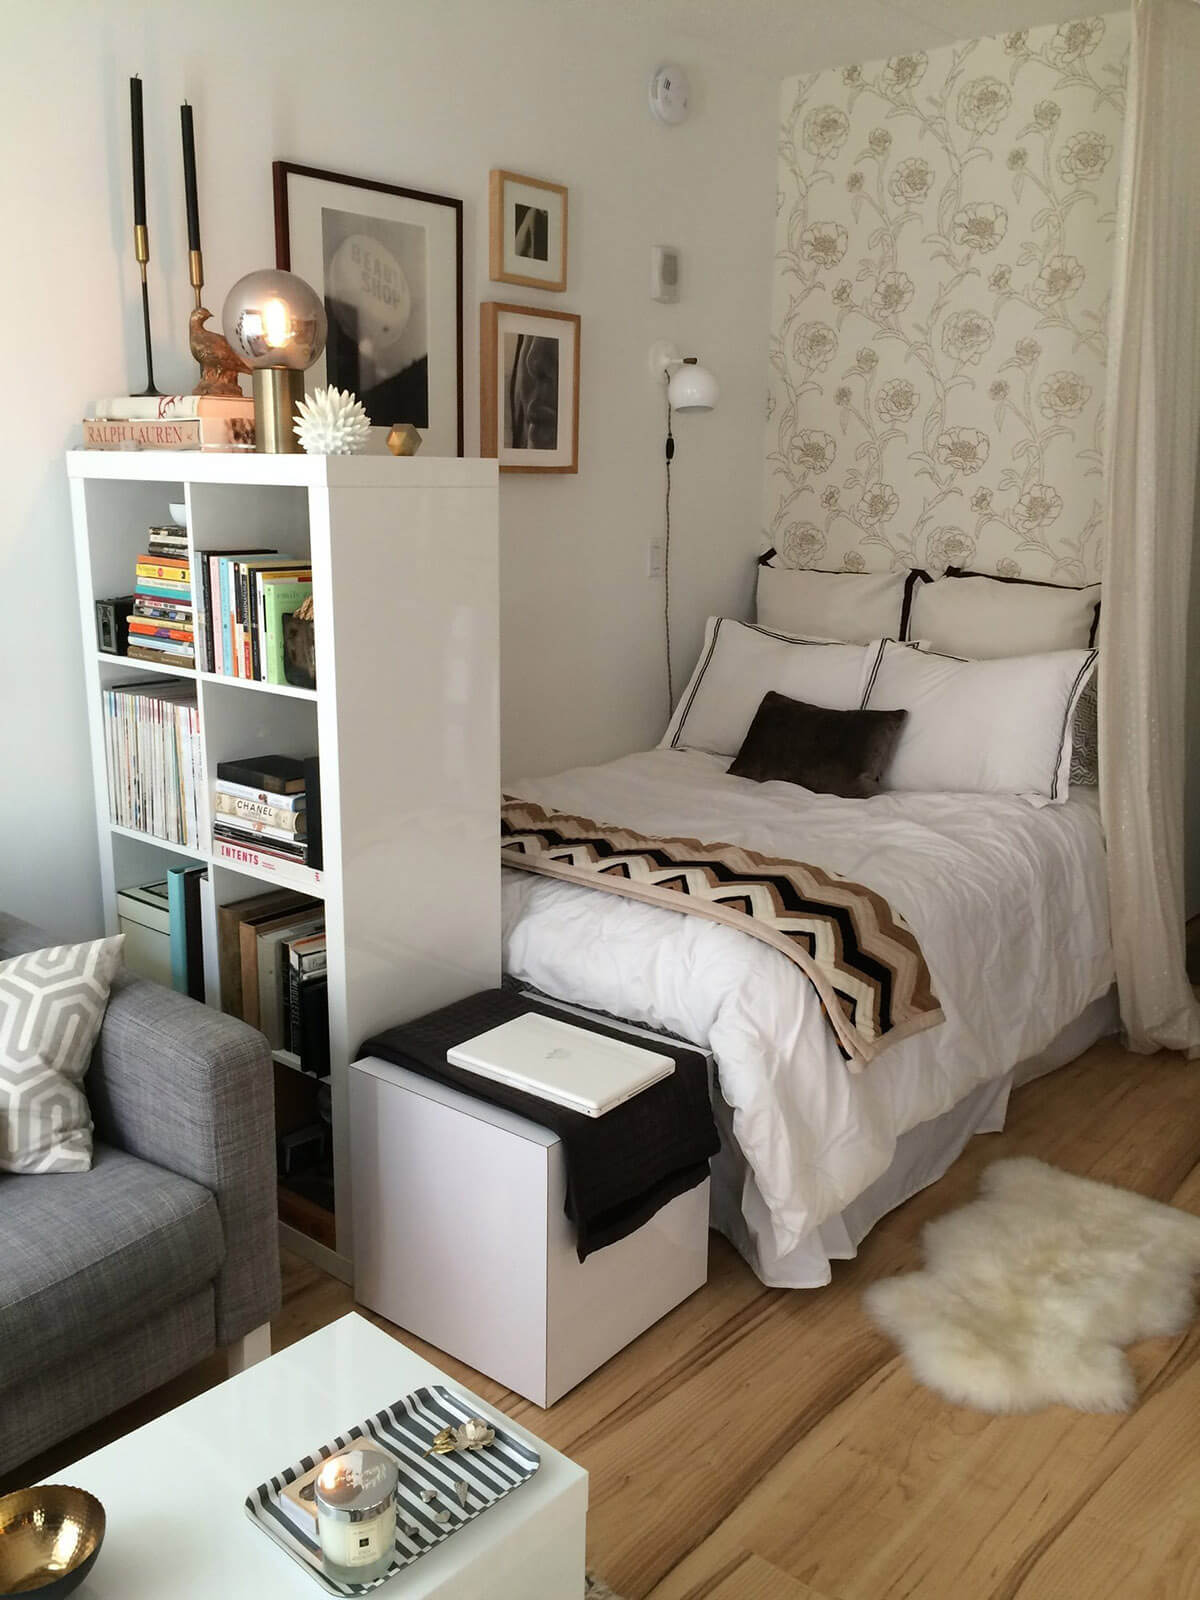 Captivating Small Bedroom Ideas With A Tall Bookshelf